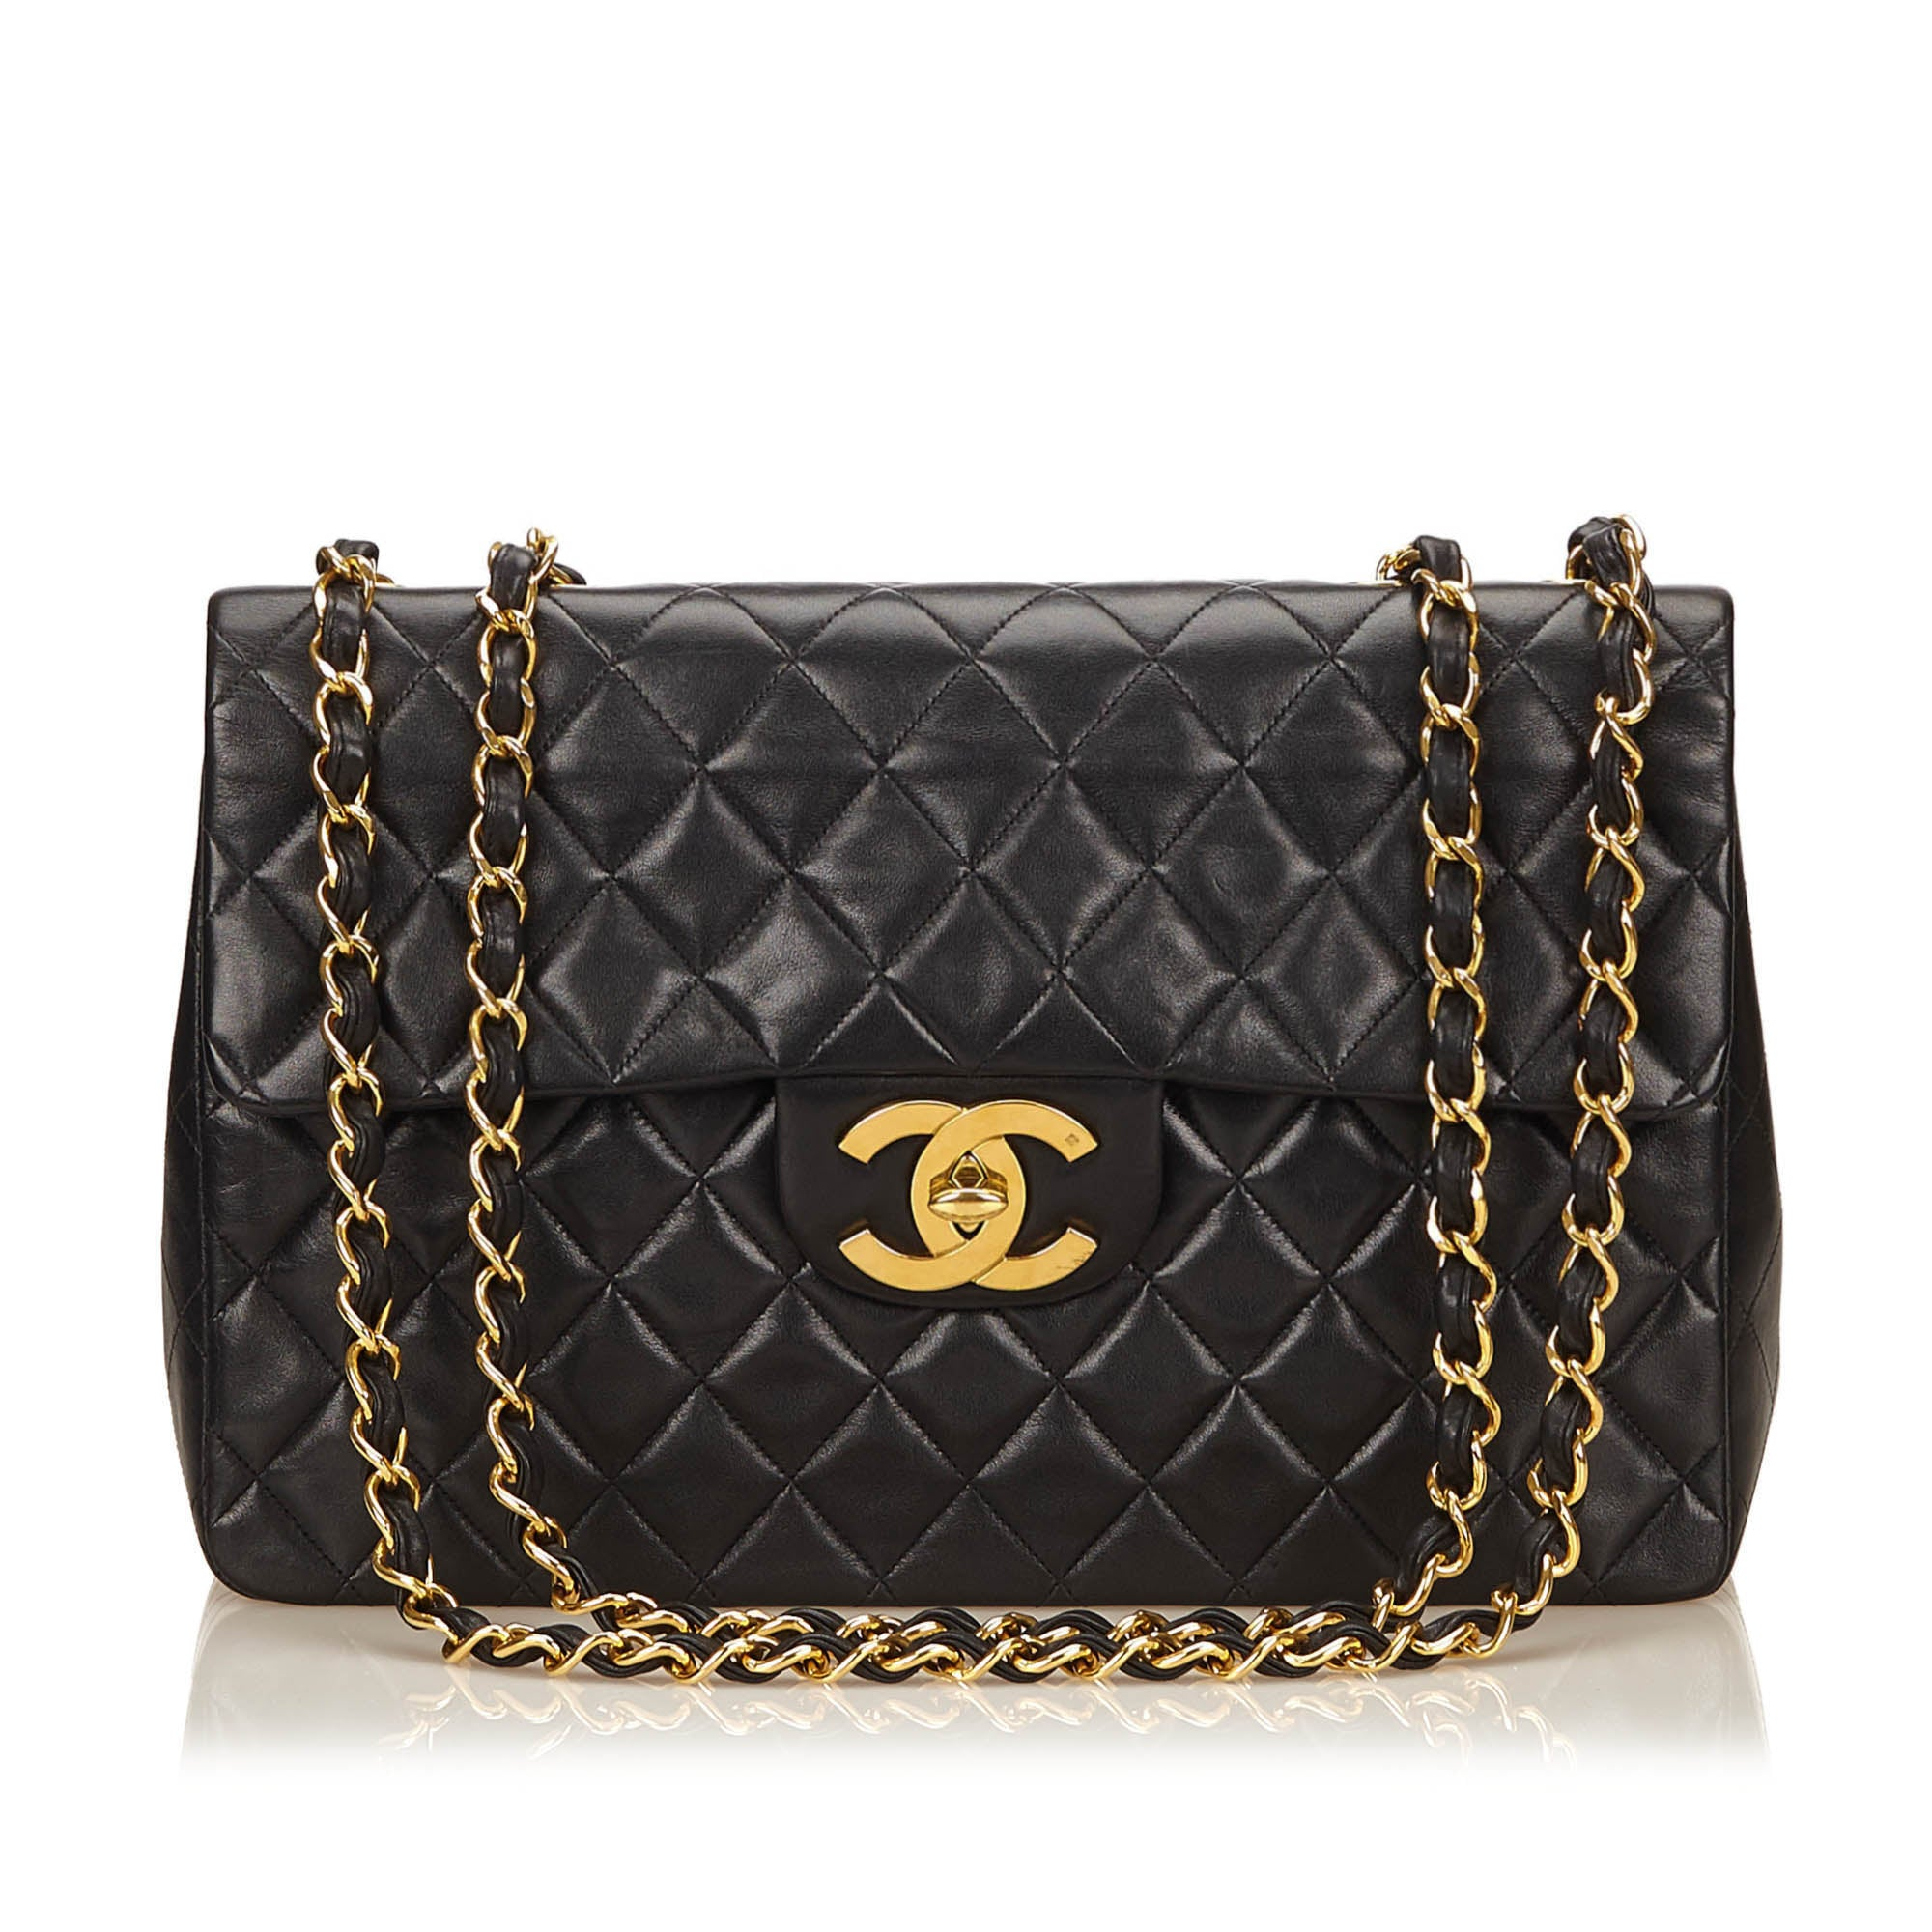 b6451993ddb4 Black Maxi Lambskin Classic Flap Bag · Chanel